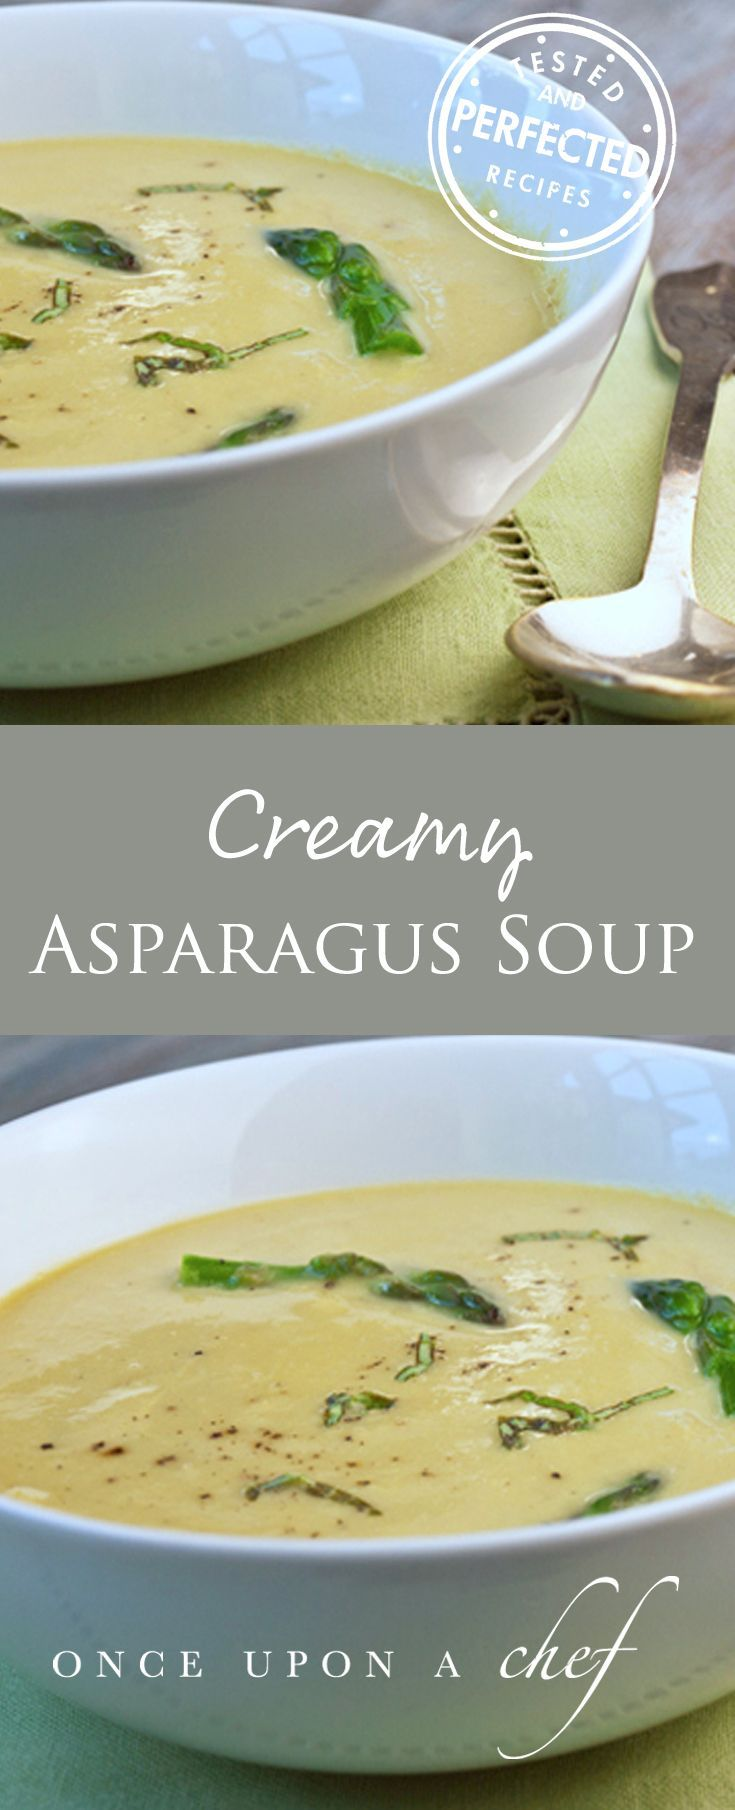 Asparagus Soup with Lemon and Parmesan. Excellent. Can add quorn nuggets